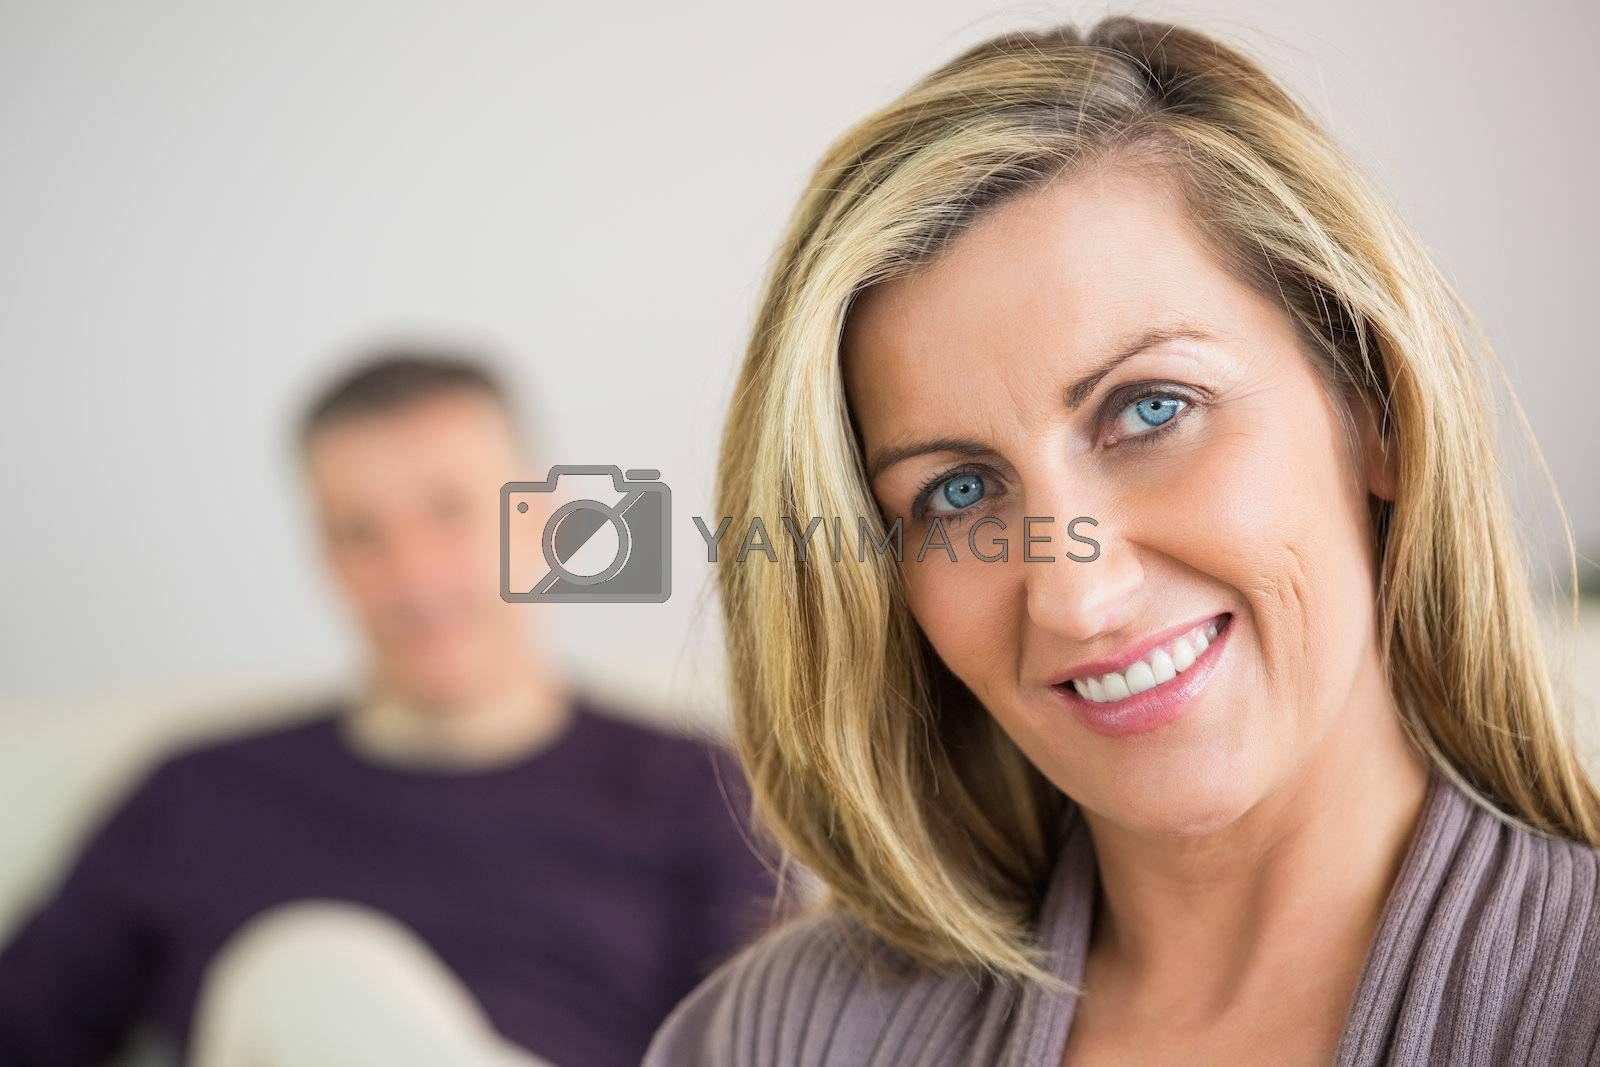 Smiling woman with her husband in the background by Wavebreakmedia